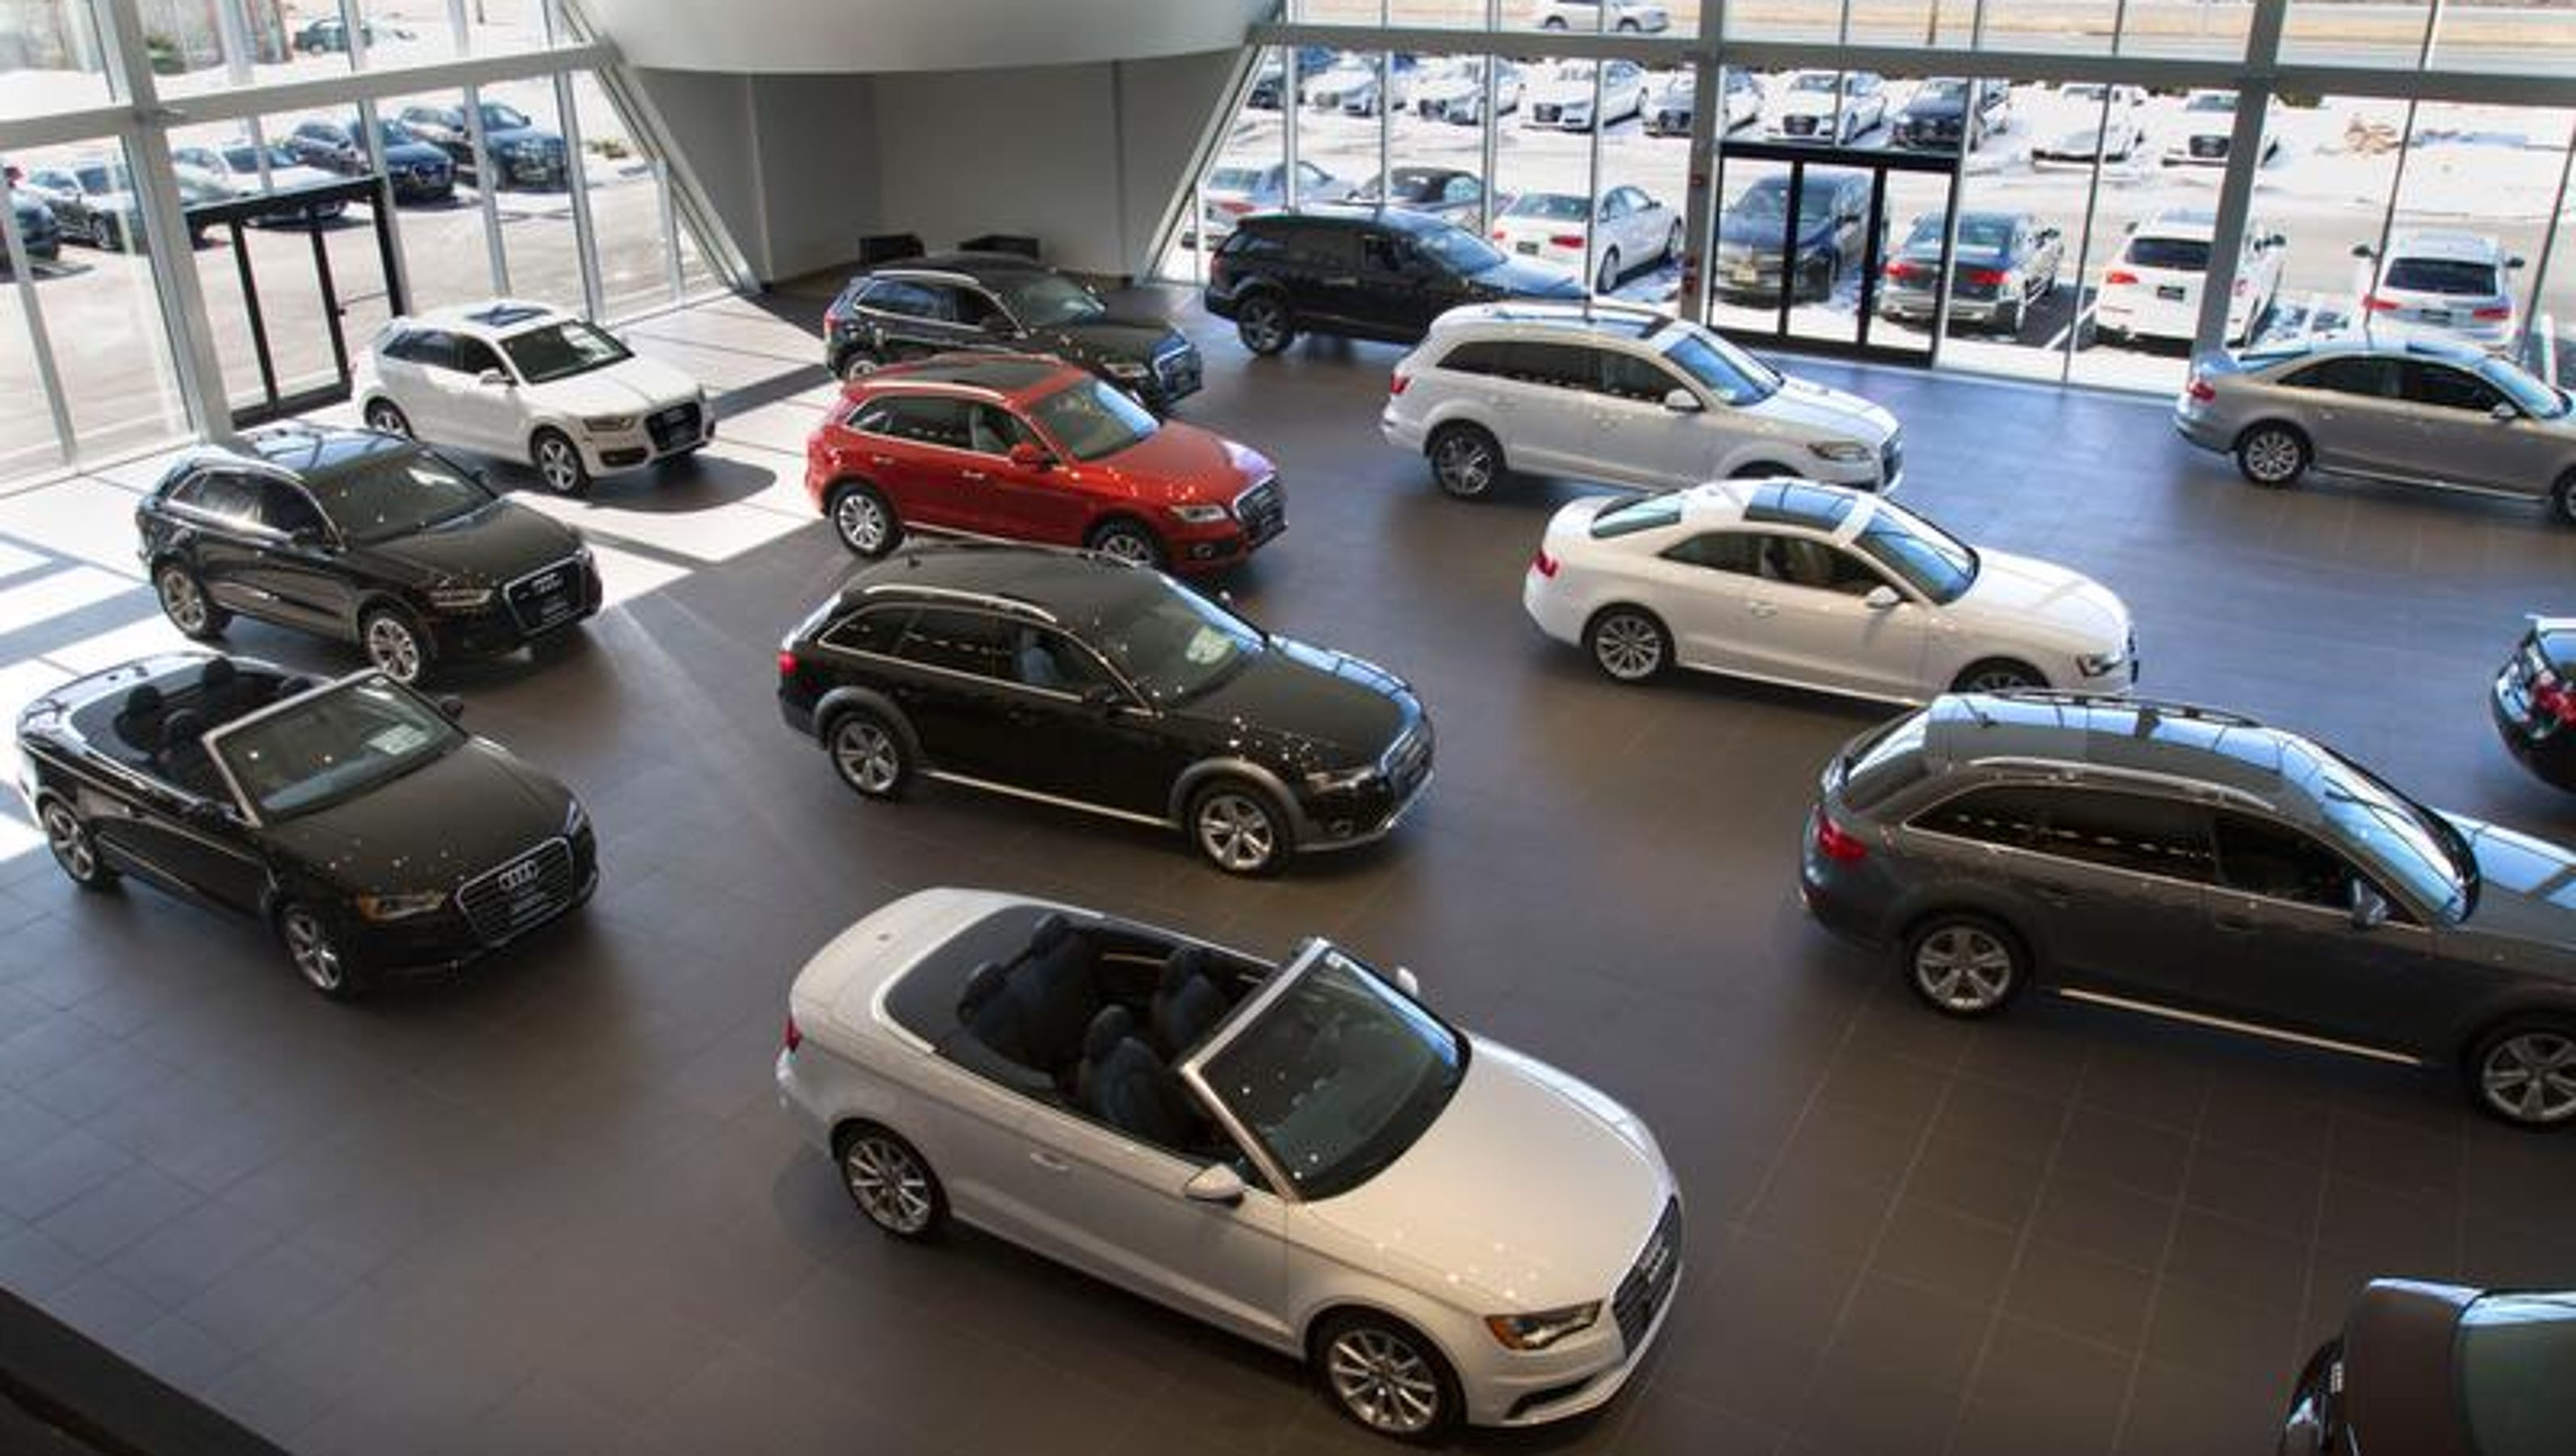 Audi freehold biggest audi dealer in u s opens in freehold for Mercedes benz freehold parts